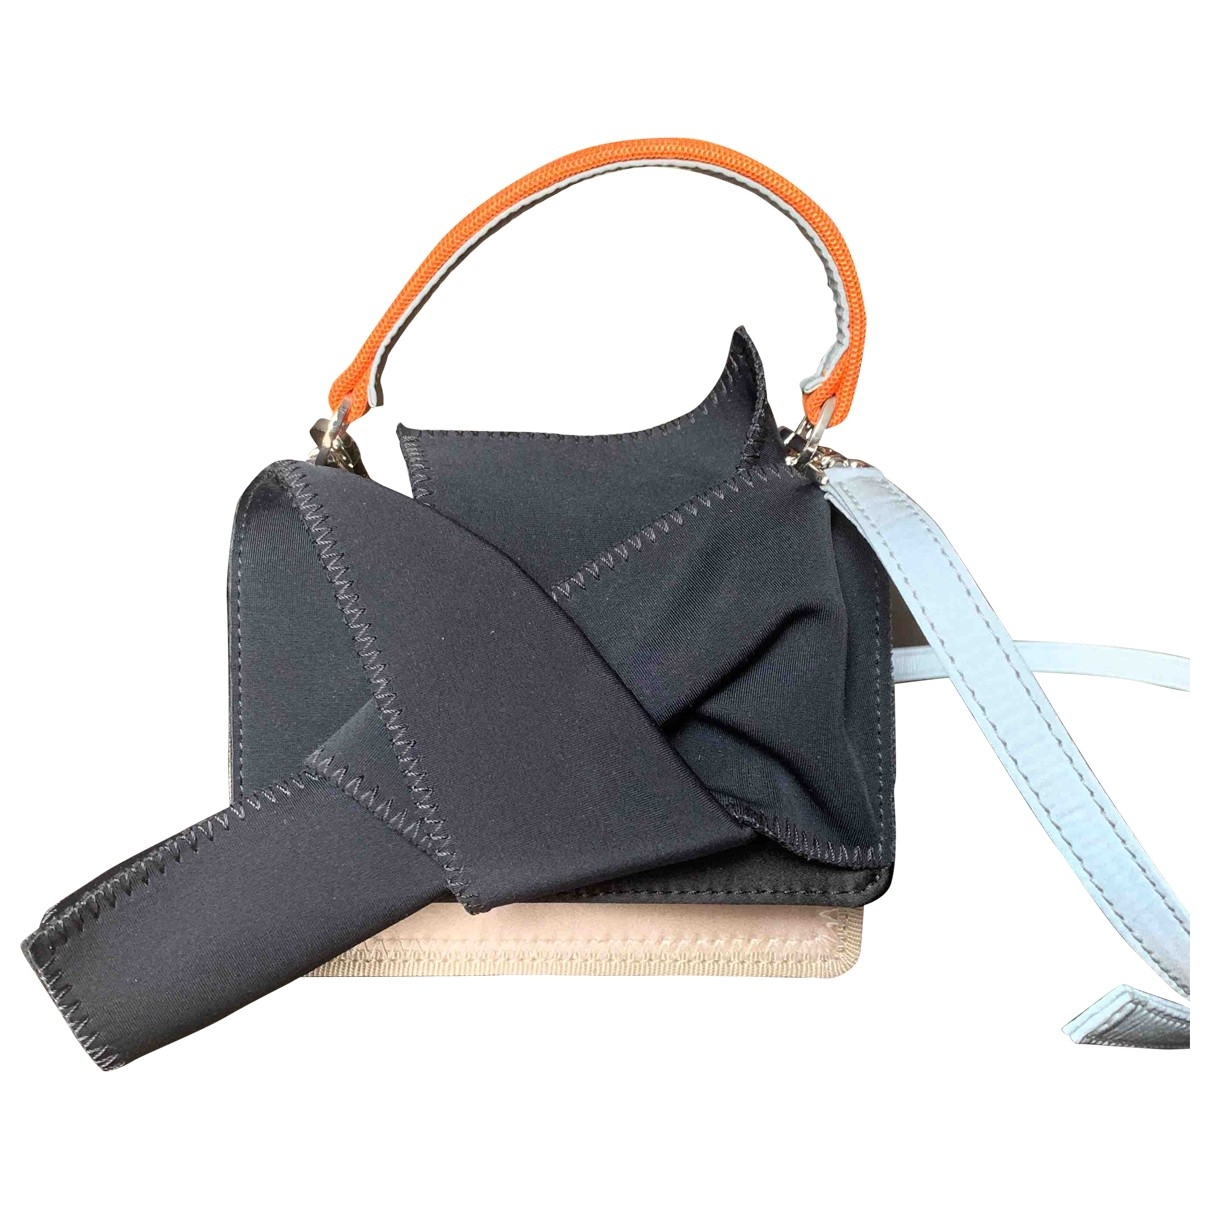 N°21 \N Black Silk handbag for Women \N